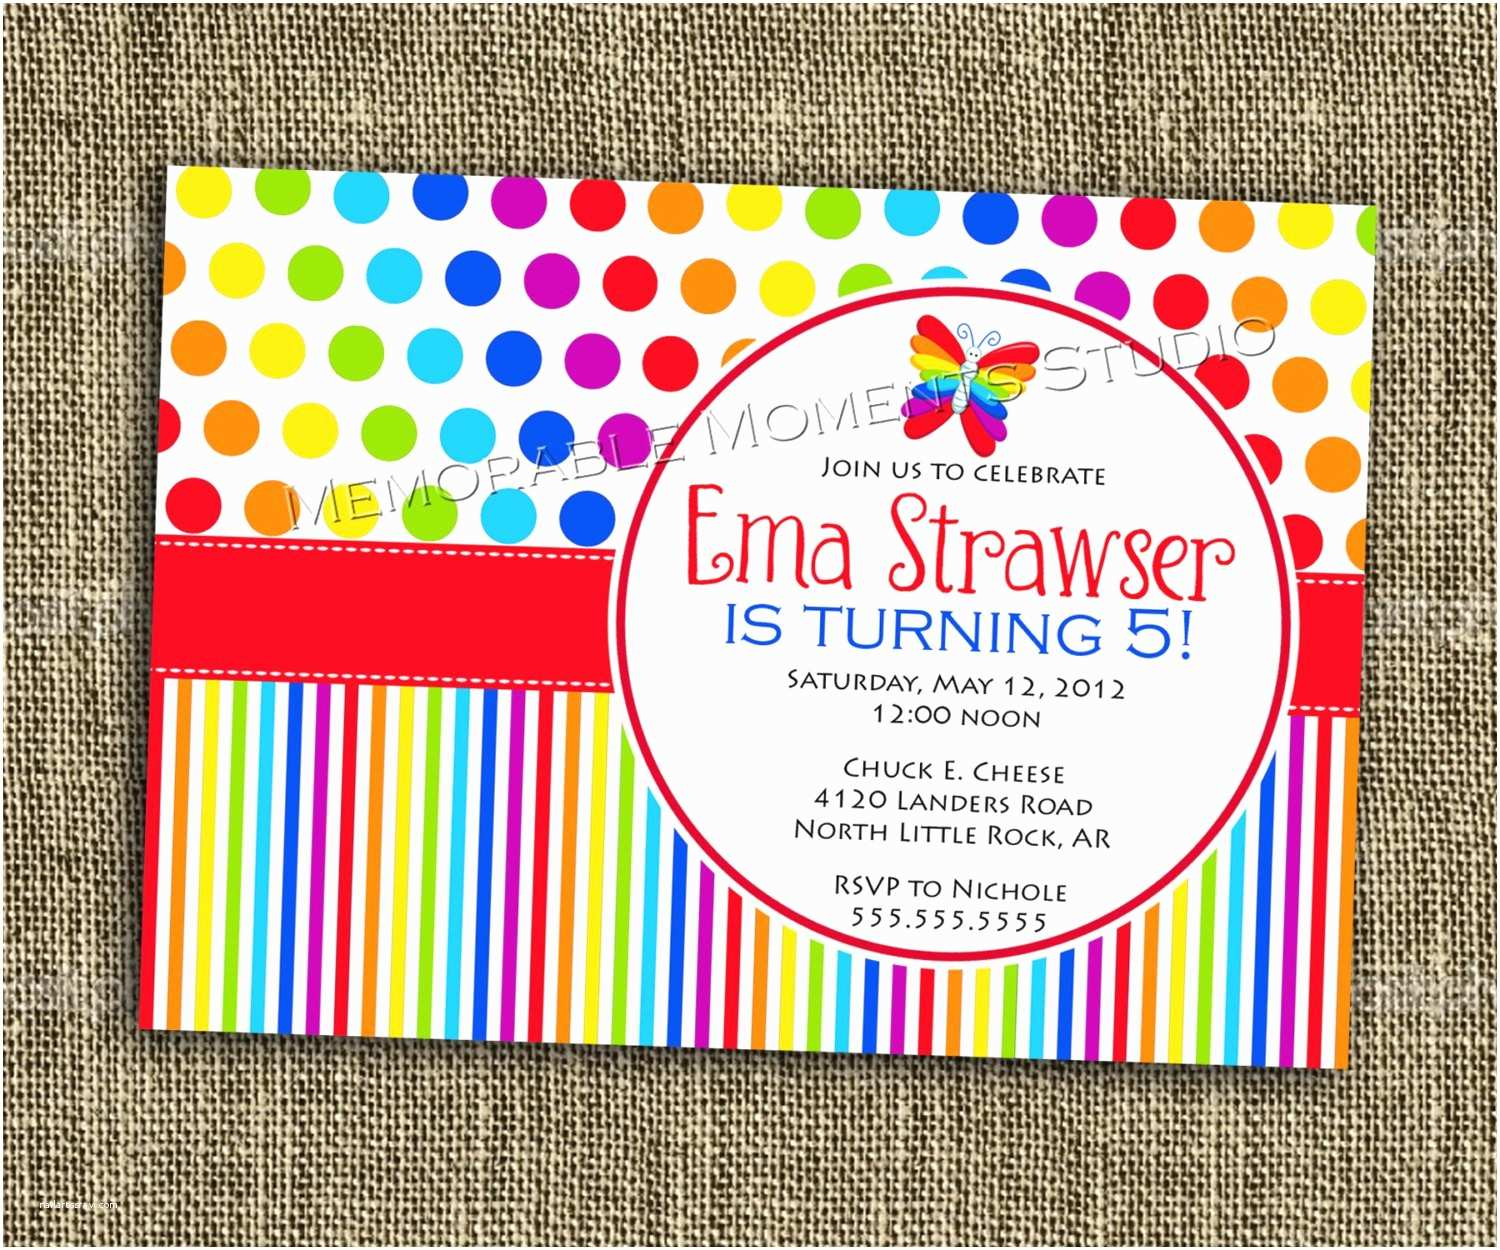 Rainbow Party Invitations Aweddingstoryblog Nailartssravi